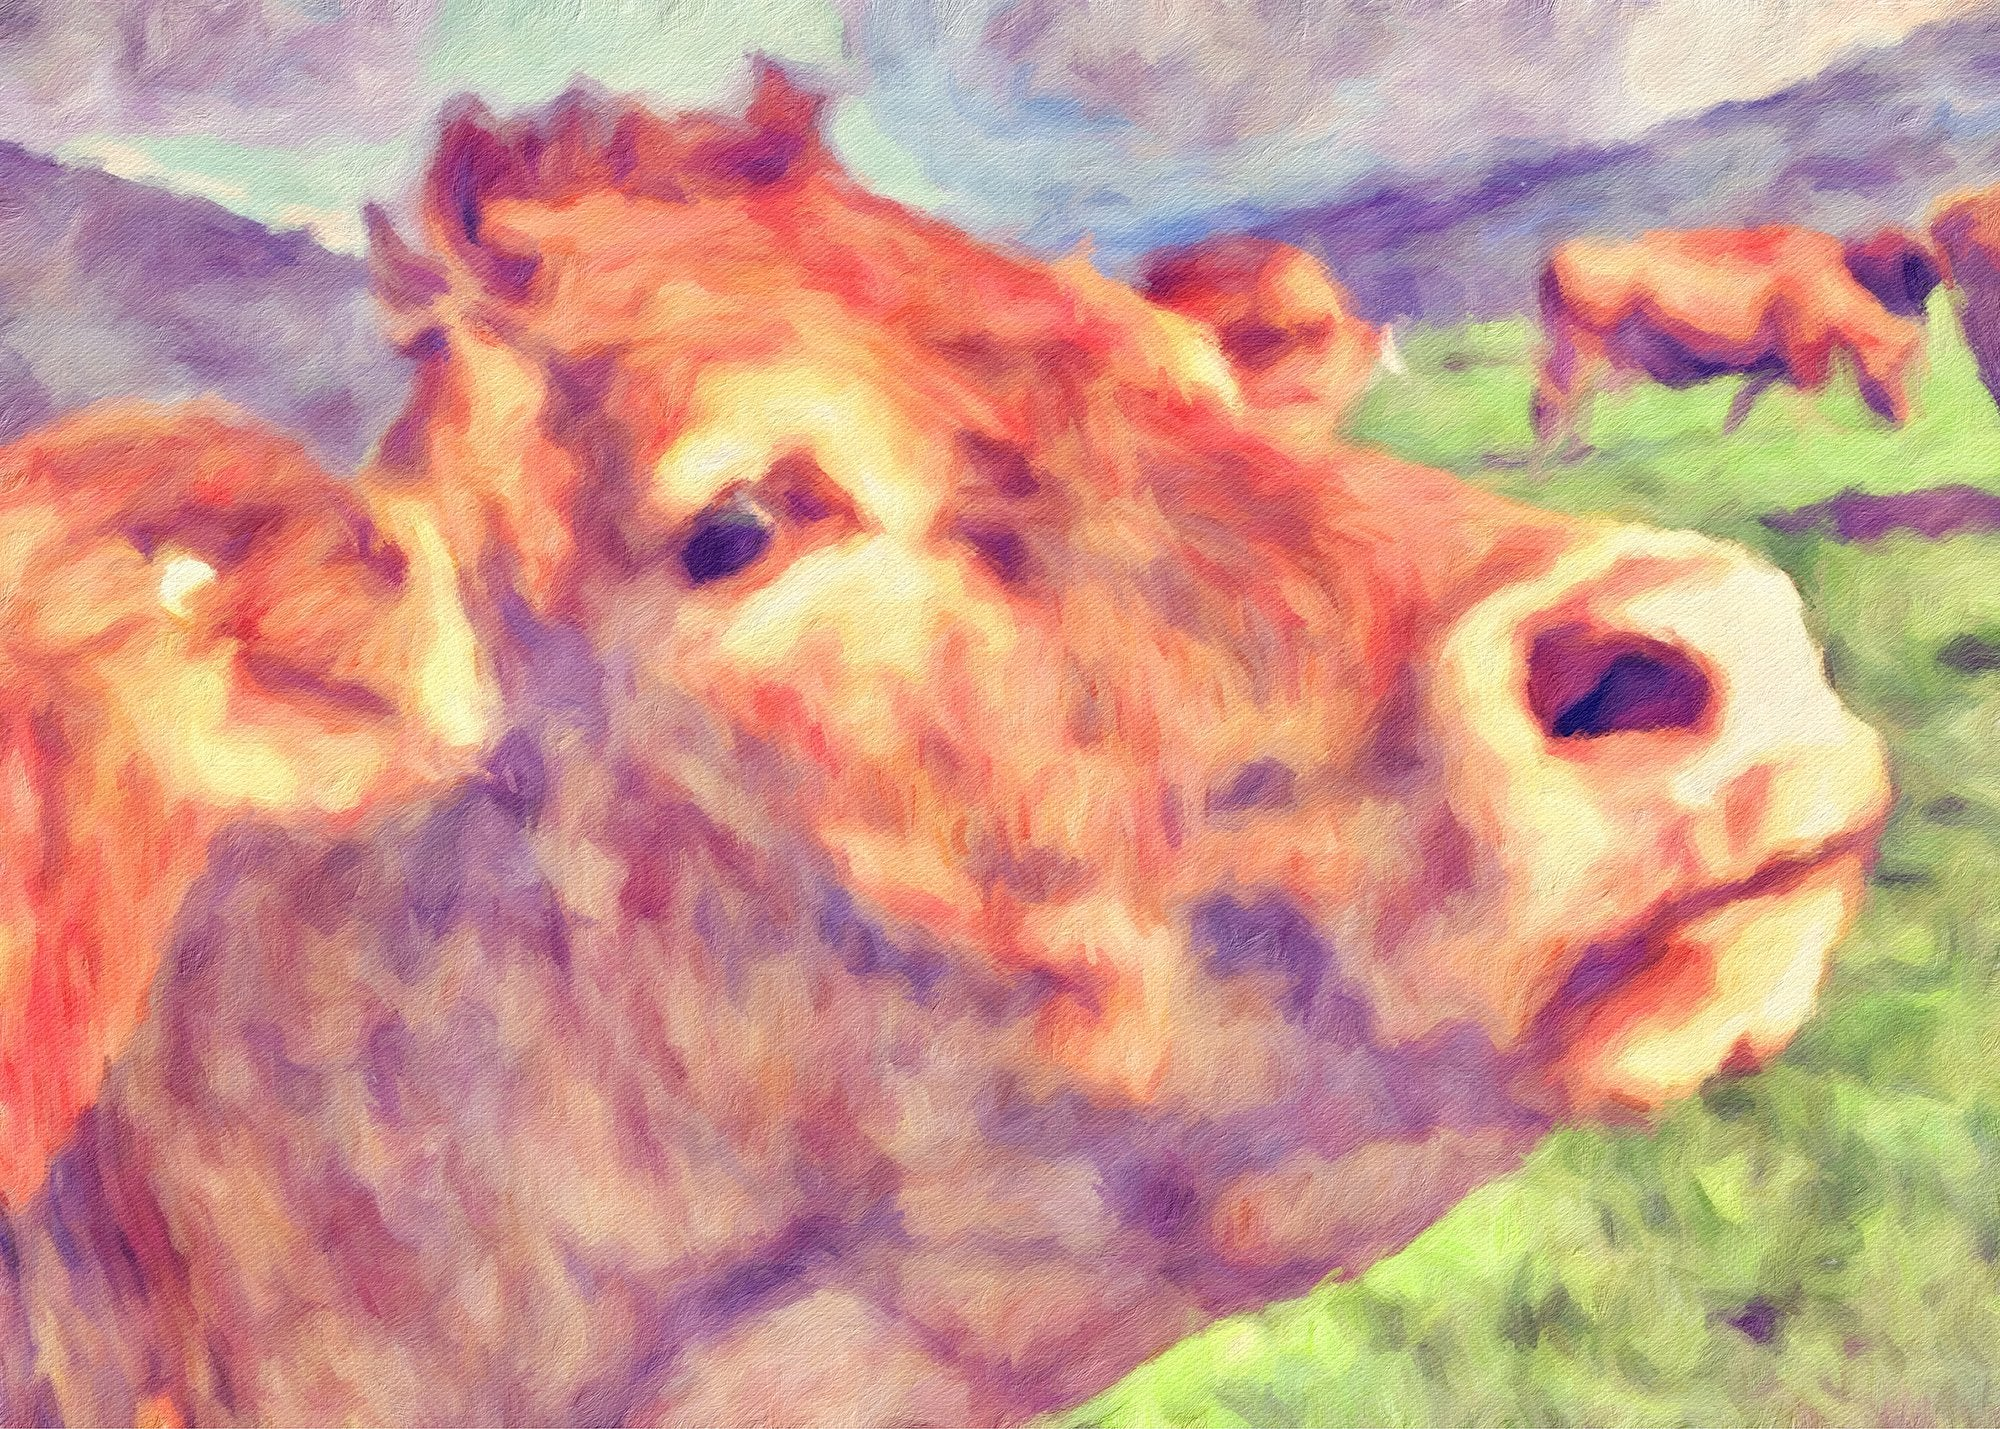 Cows No. 20, Reworked